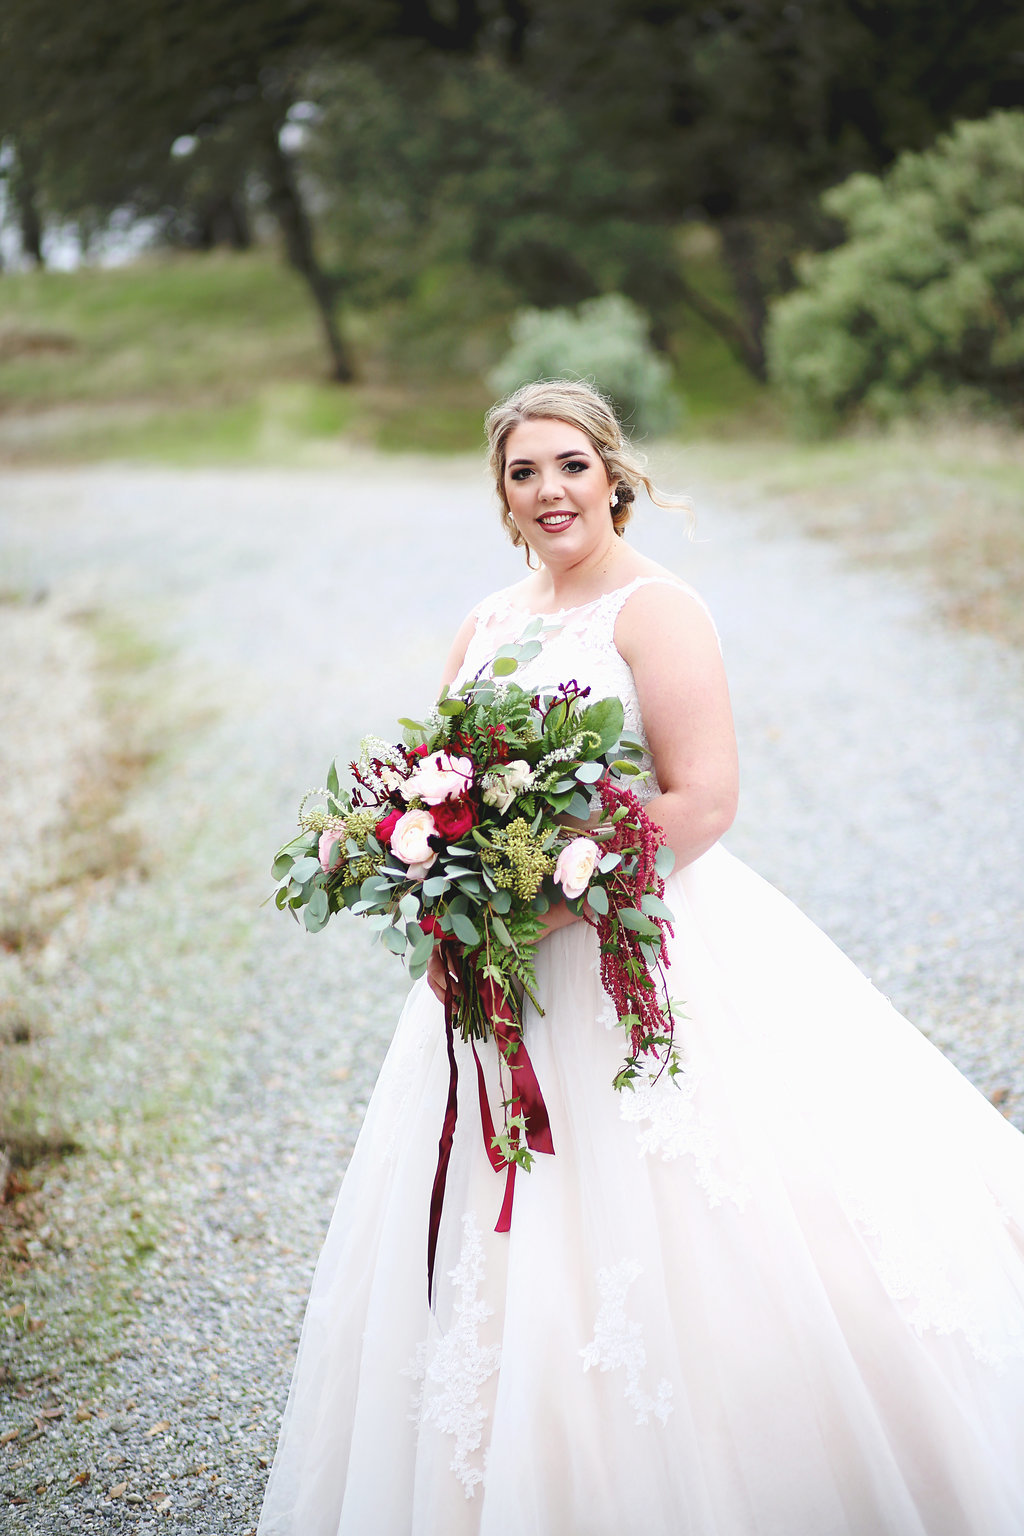 Velours Designs | Redding, CA | Katelyn Parra Photography